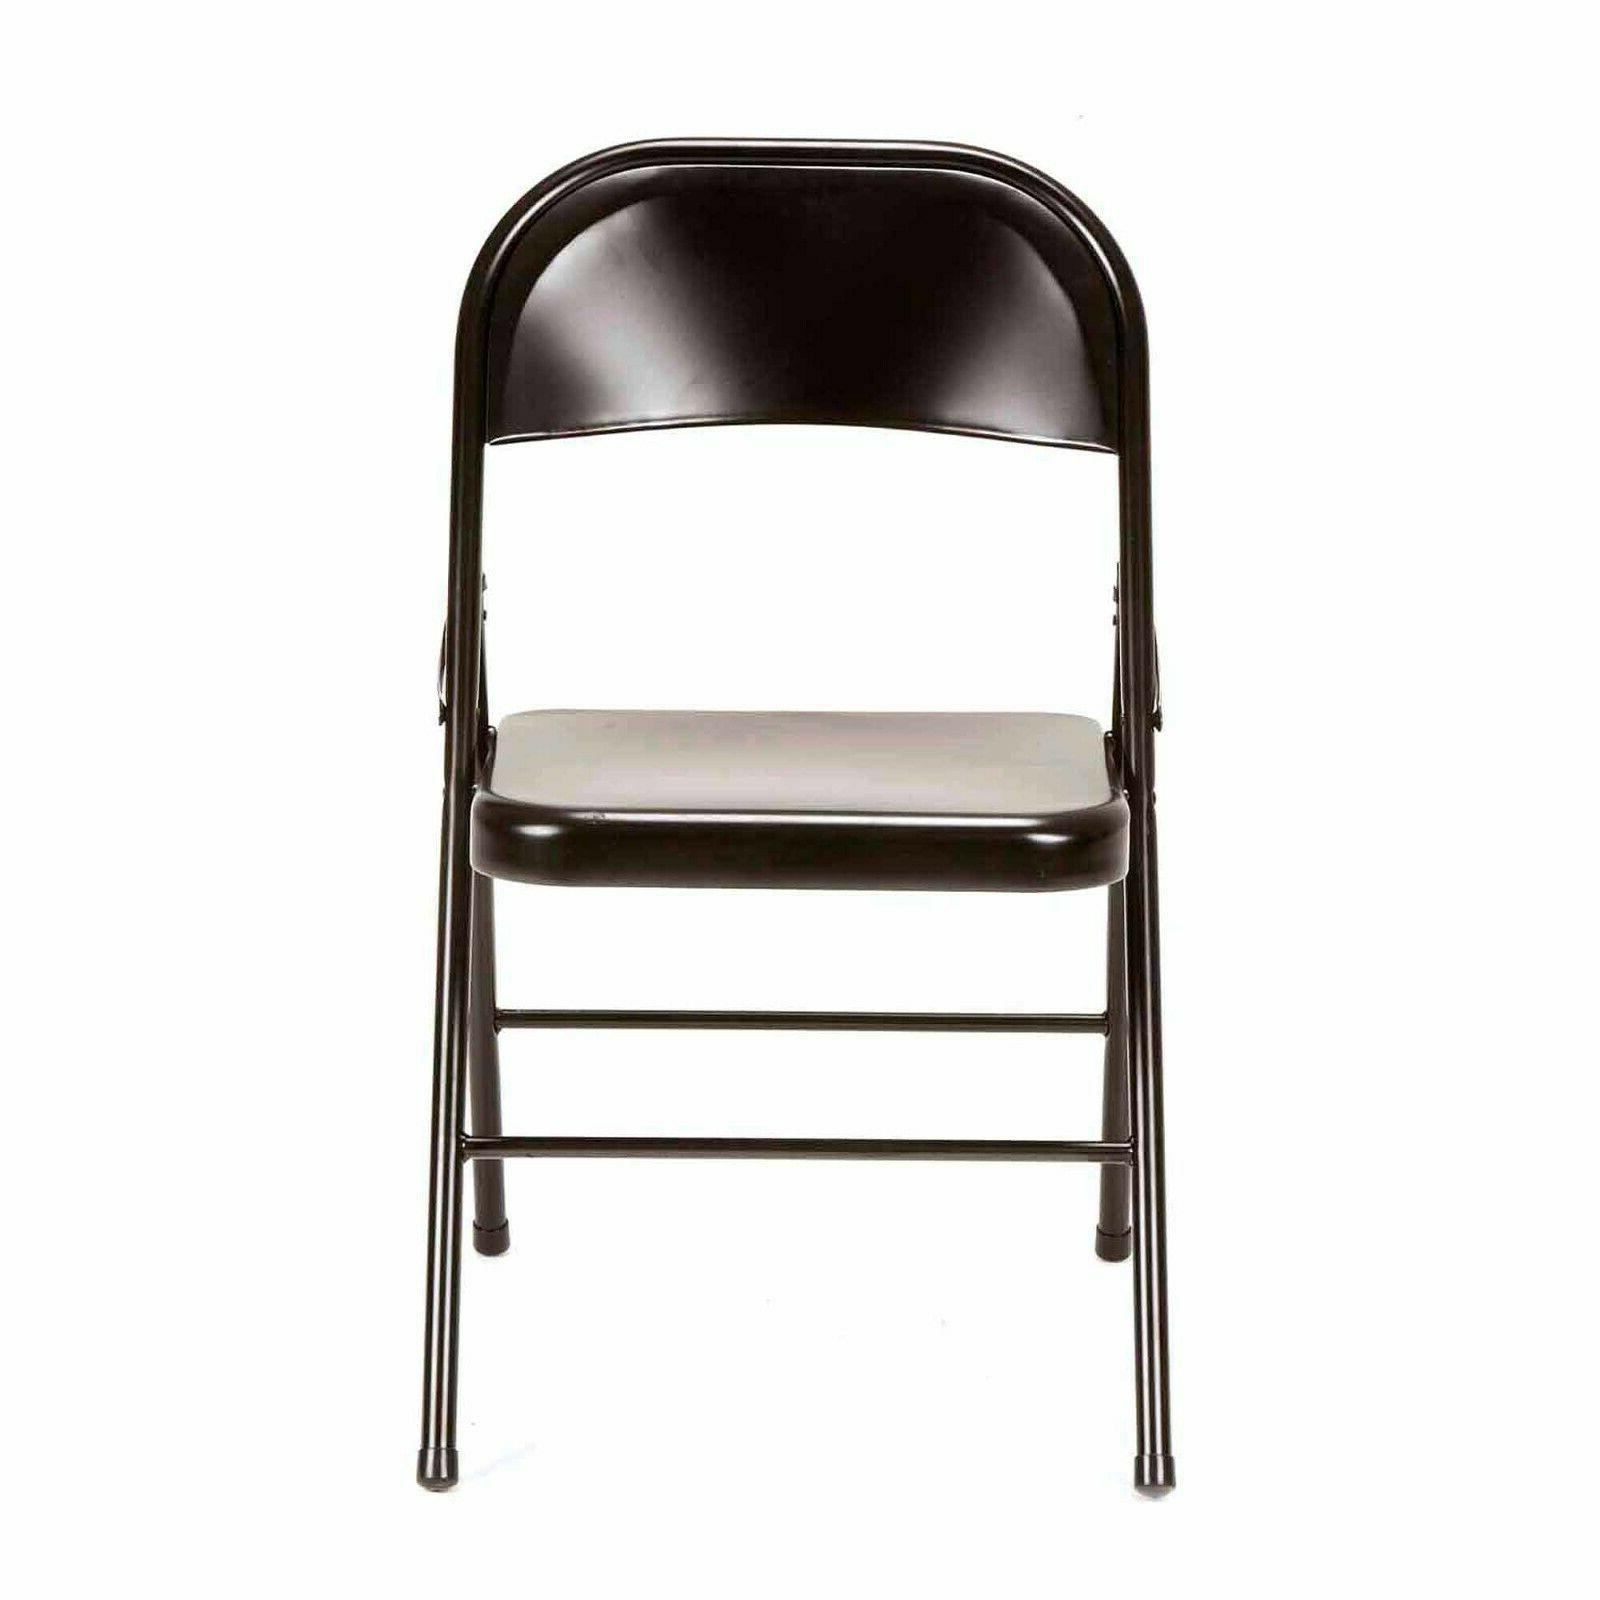 4 Steel Chair Portable Office NEW